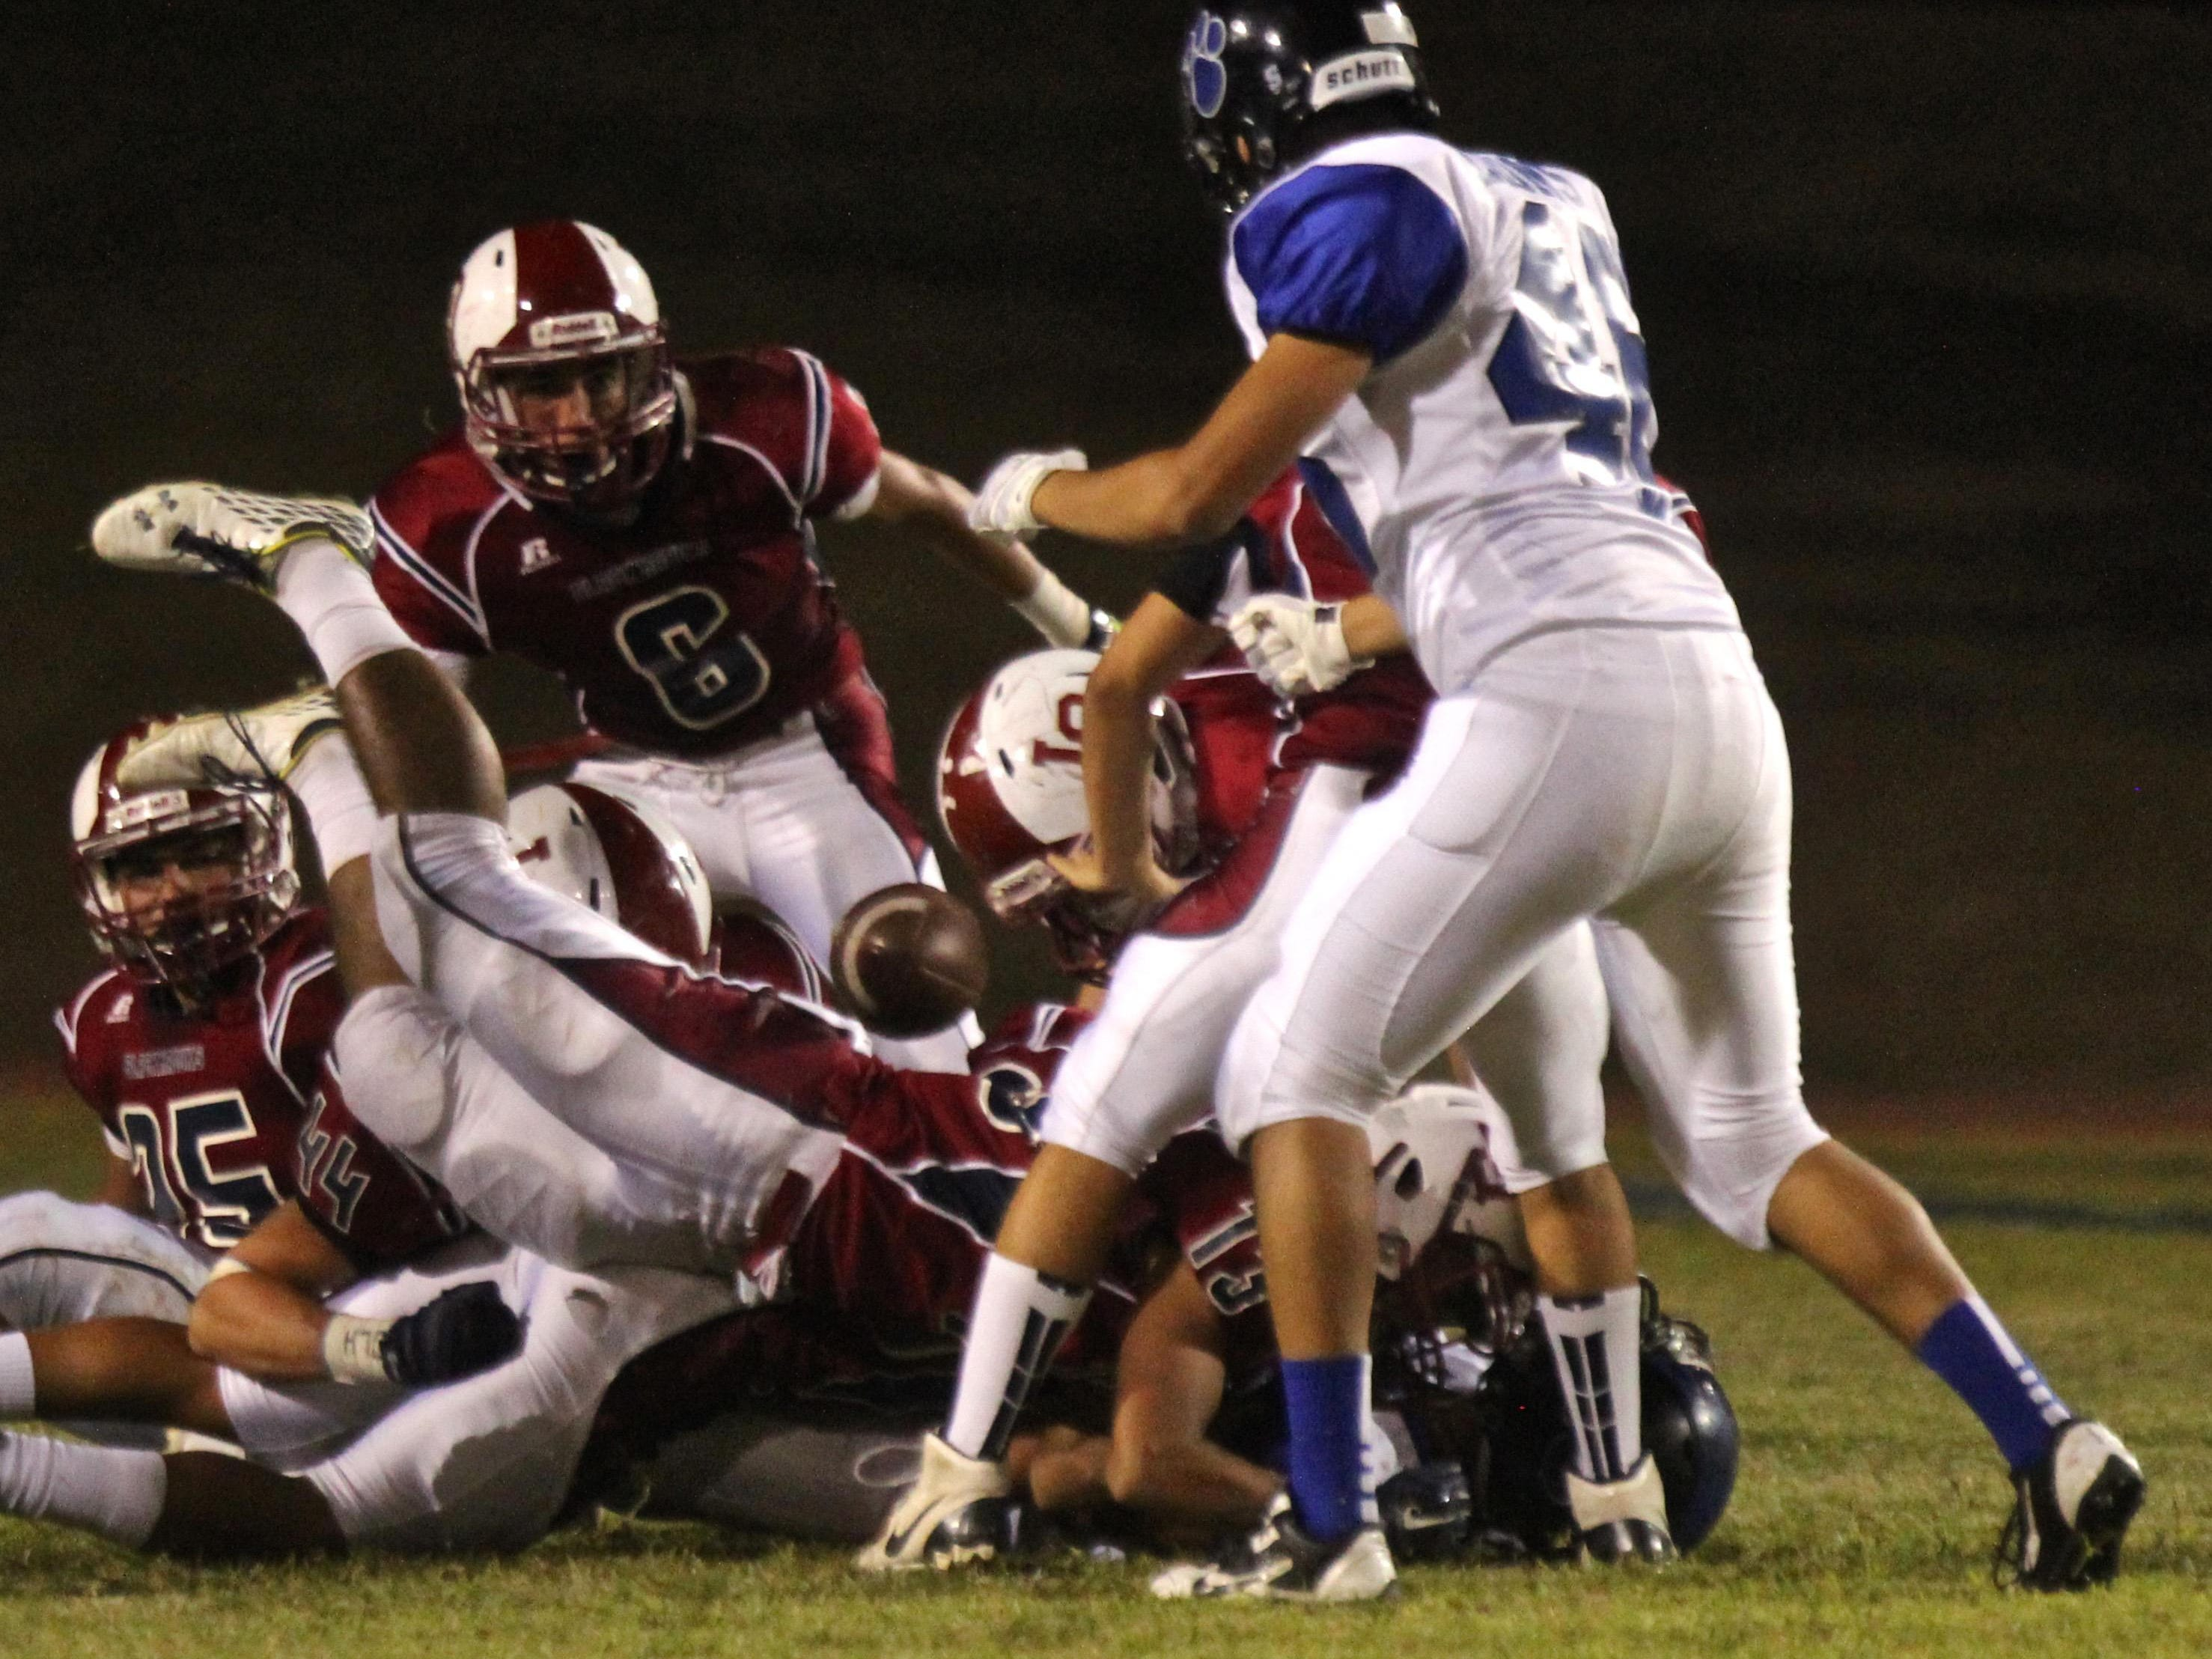 The La Quinta Blackhawks hosted the Cathedral City Lions for a football game on Friday.